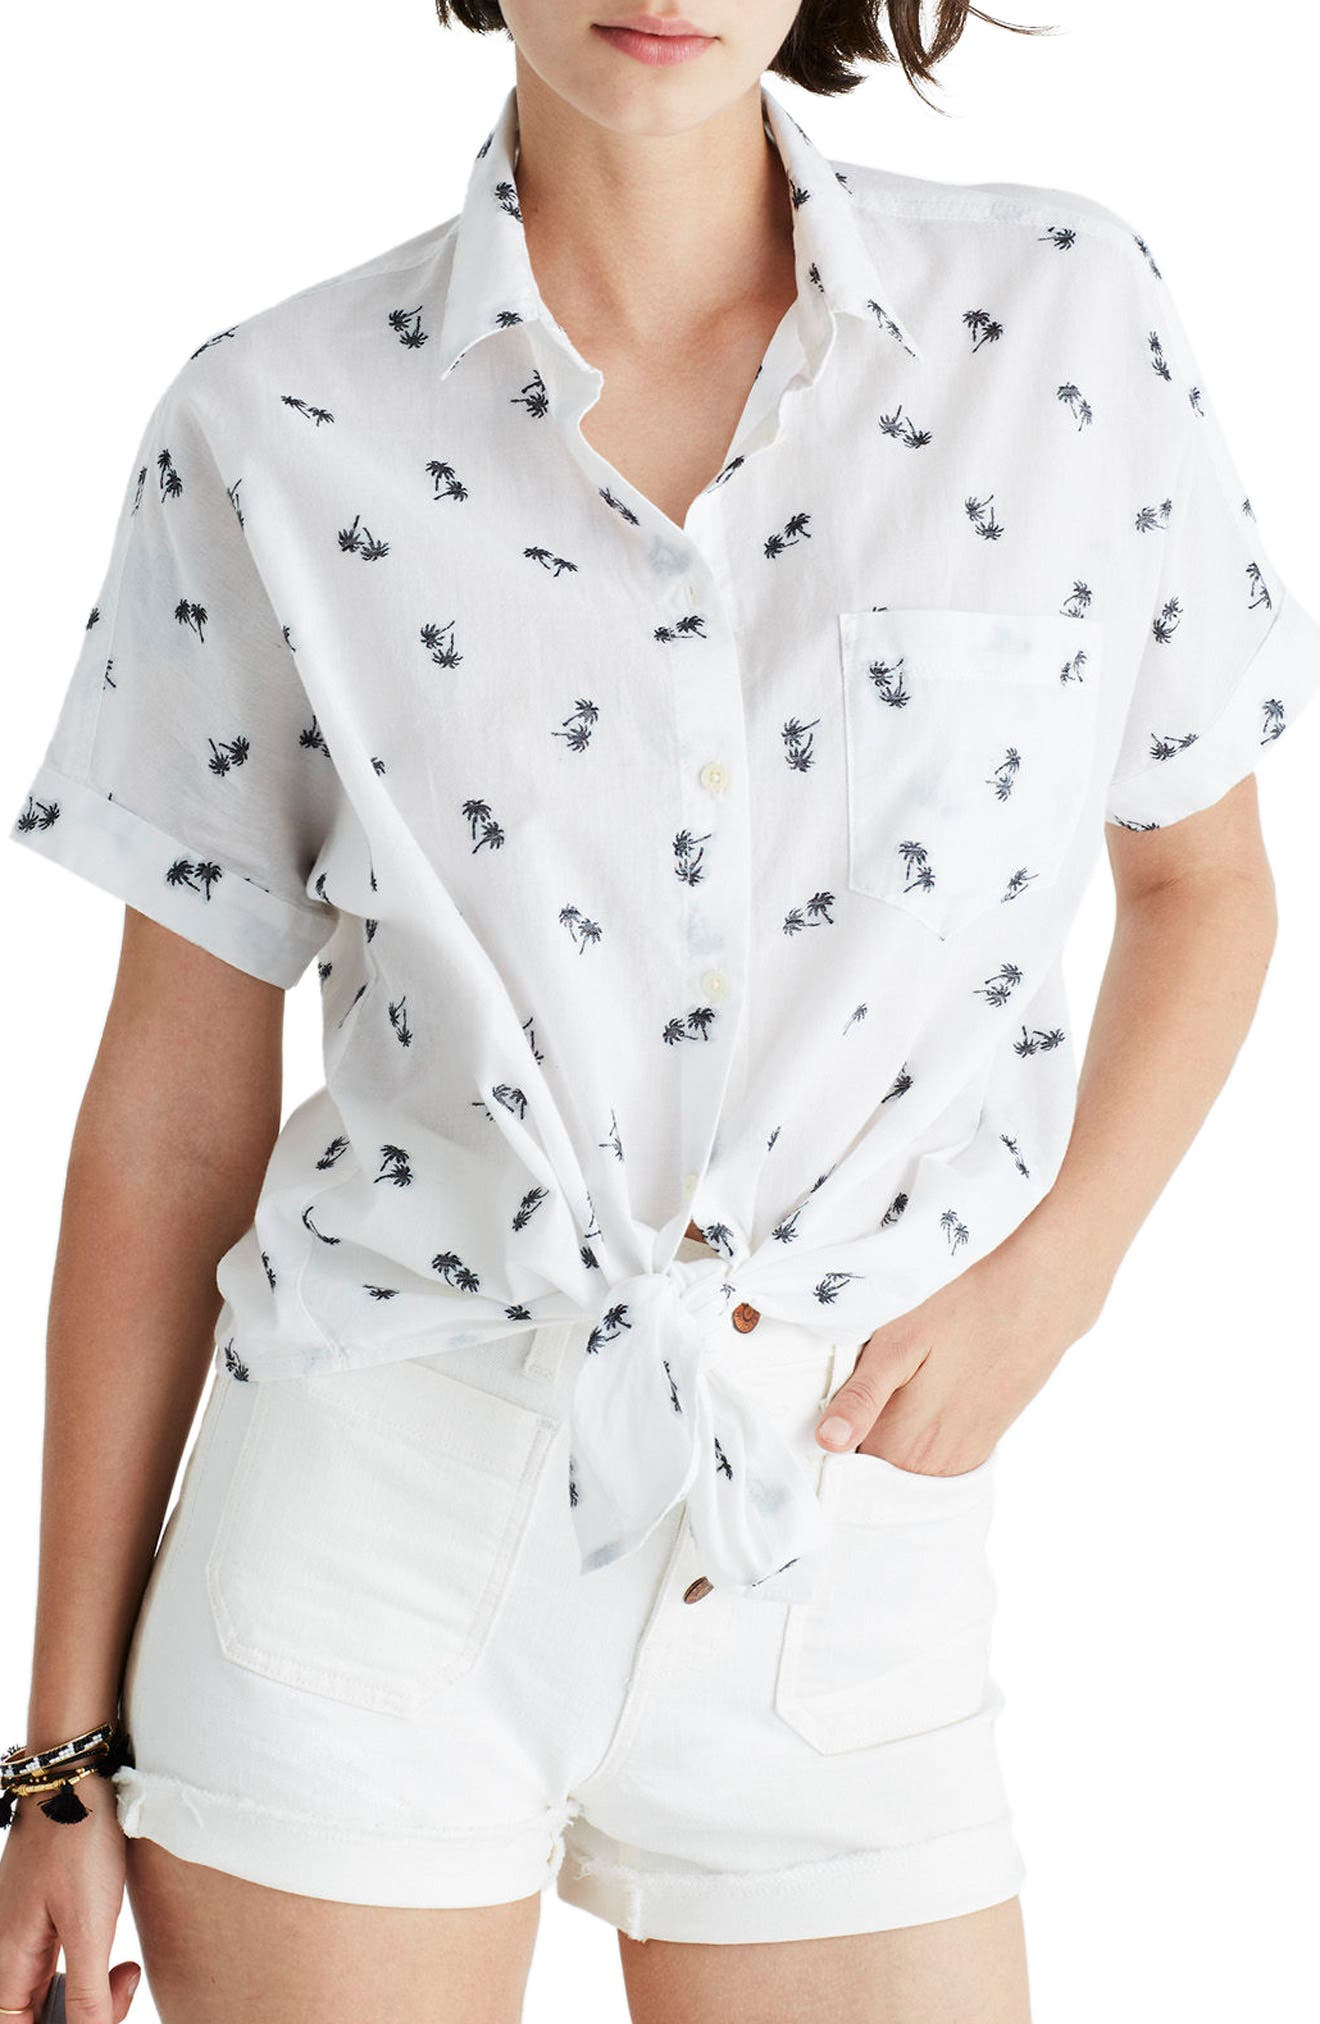 Main Image - Madewell Palm Print Tie Front Shirt